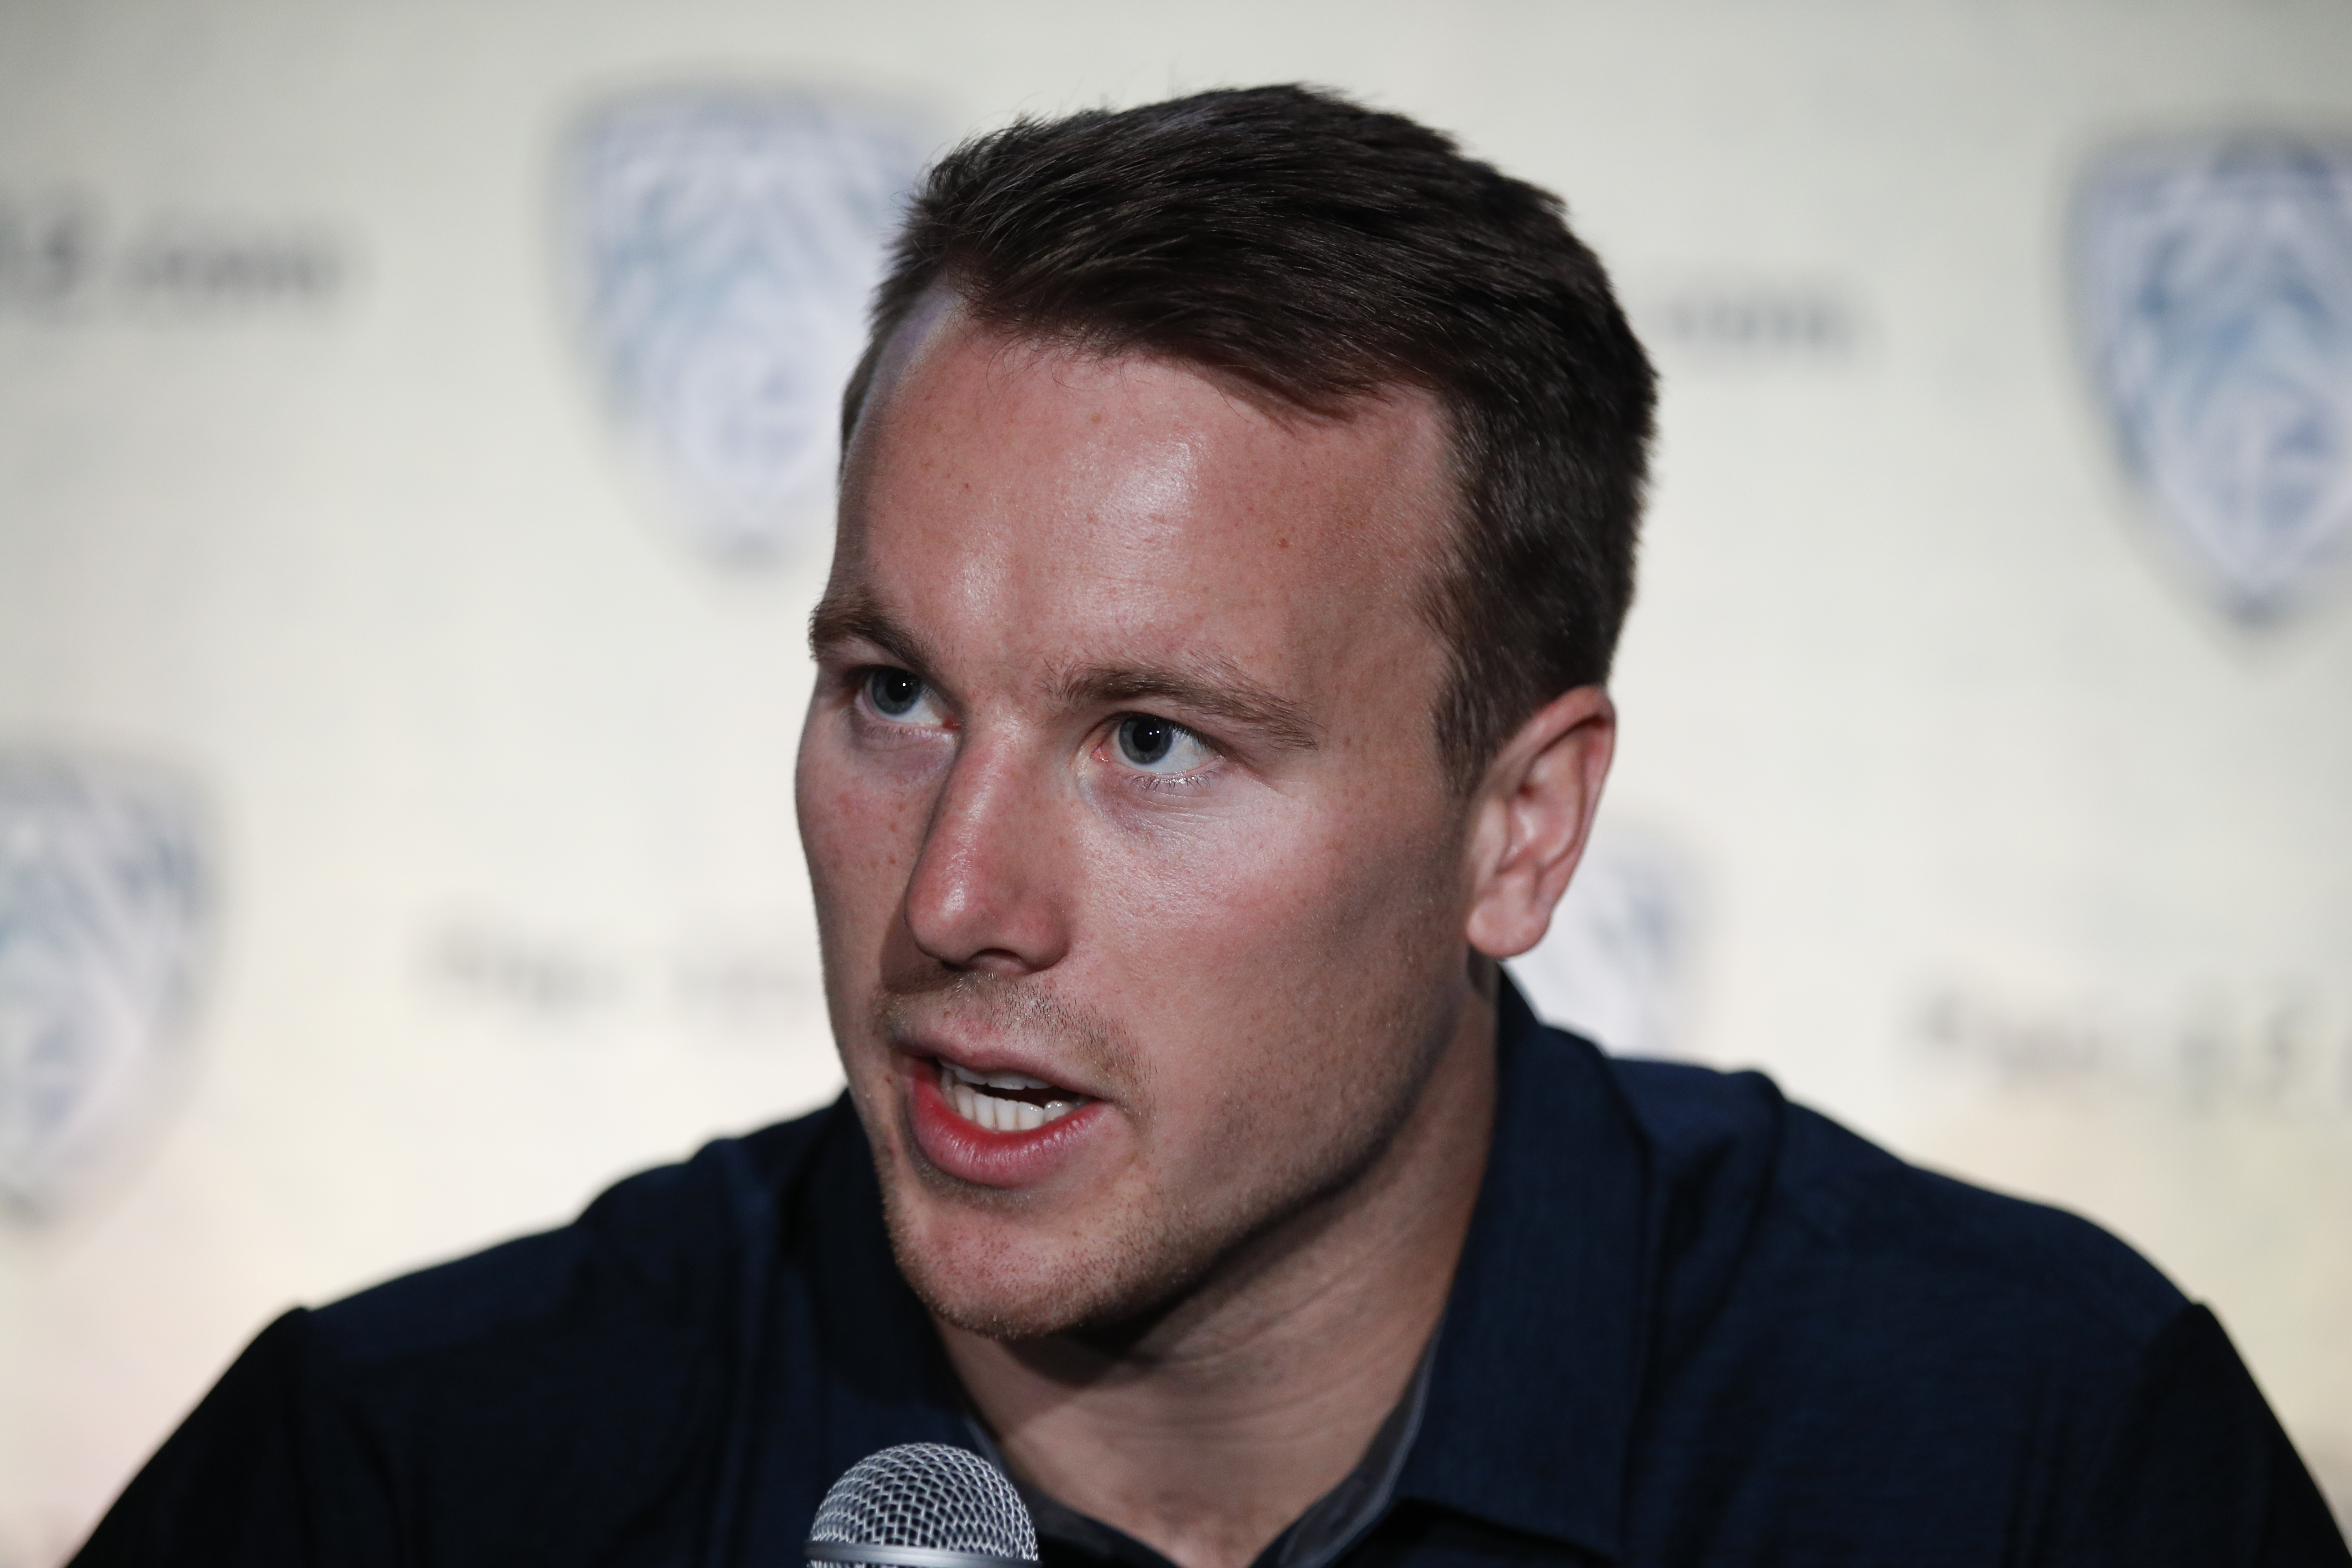 FILE - In this July 25, 2018, file photo, California running back Patrick Laird speaks at the Pac-12 Conference NCAA college football Media Day in Los Angeles. Laird has come from seventh-string walk-on to leading man on California's offense during his time with the Golden Bears. (AP Photo/Jae C. Hong, File)